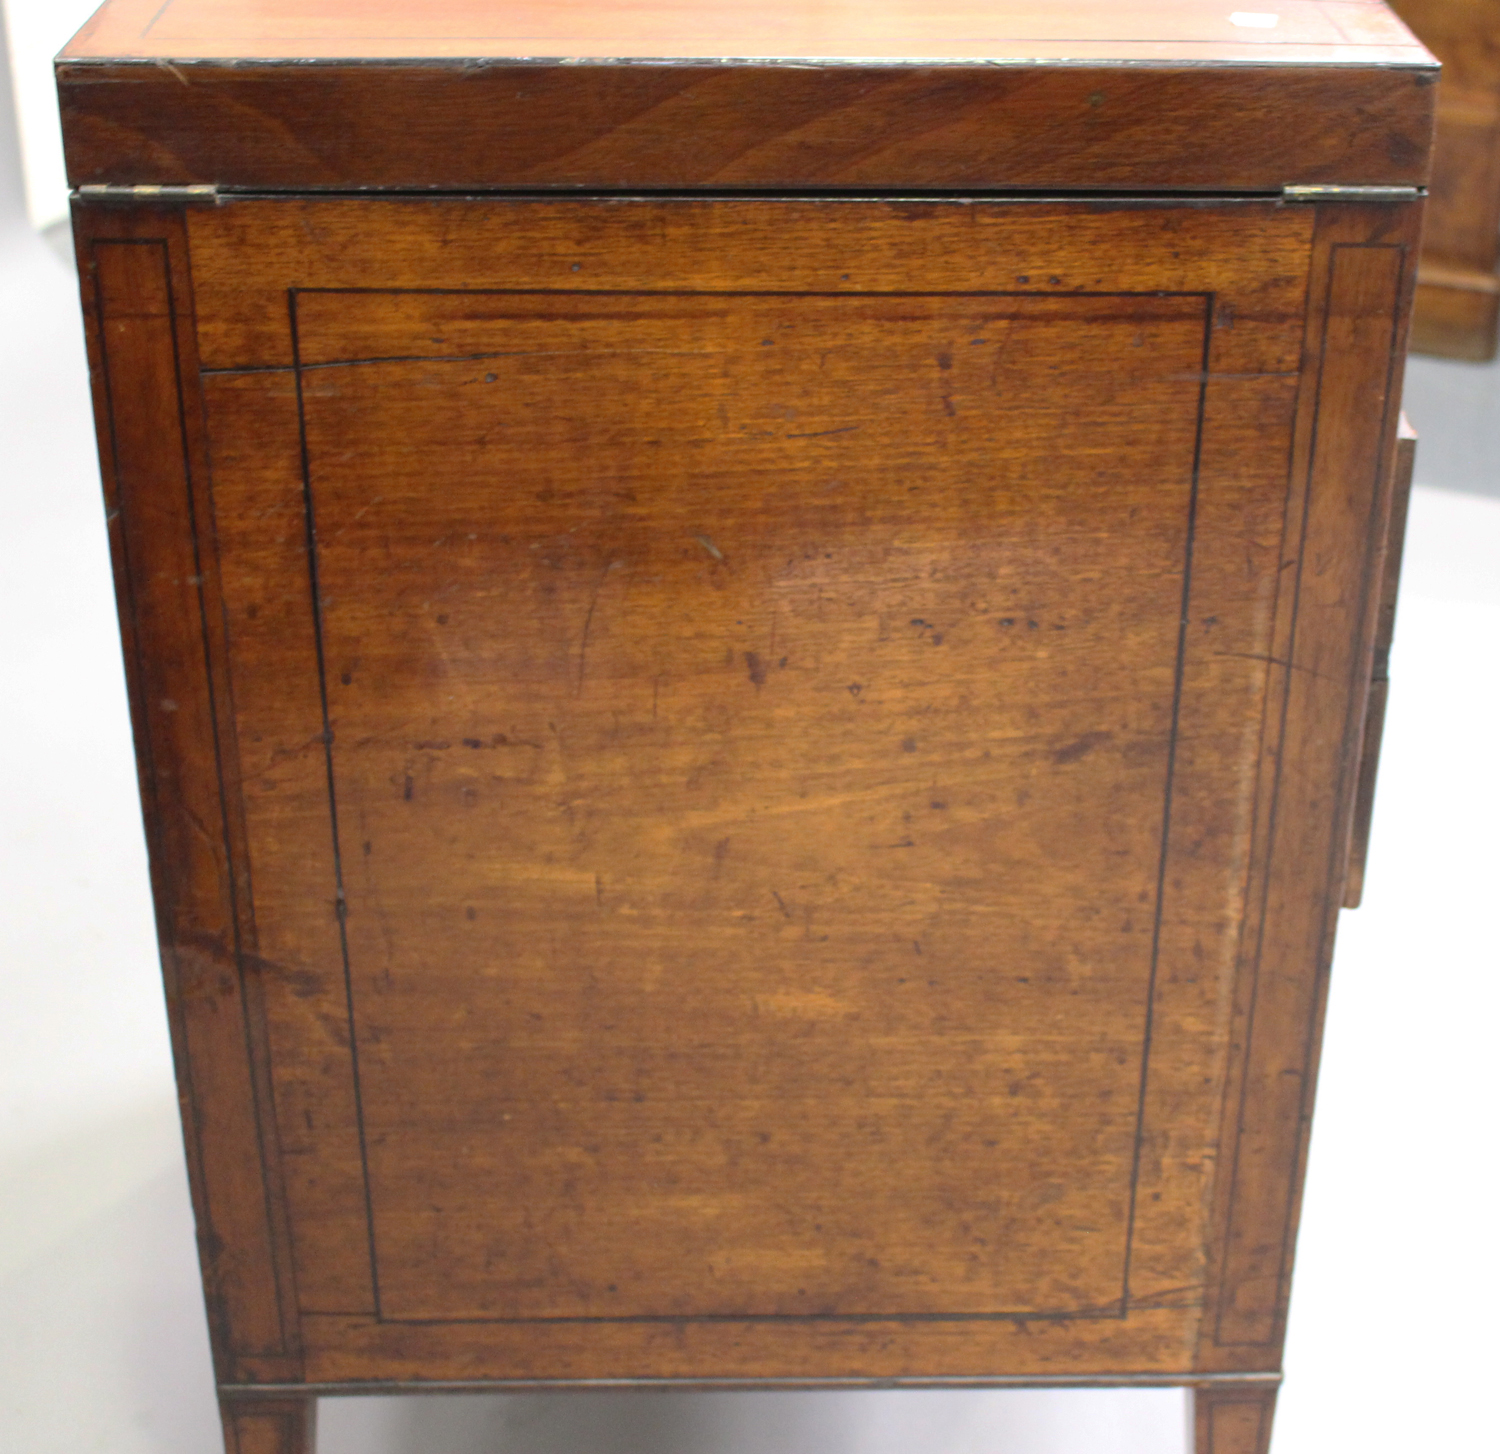 A George III mahogany dressing table, the double hinged top revealing a compartmentalized interior - Image 2 of 6